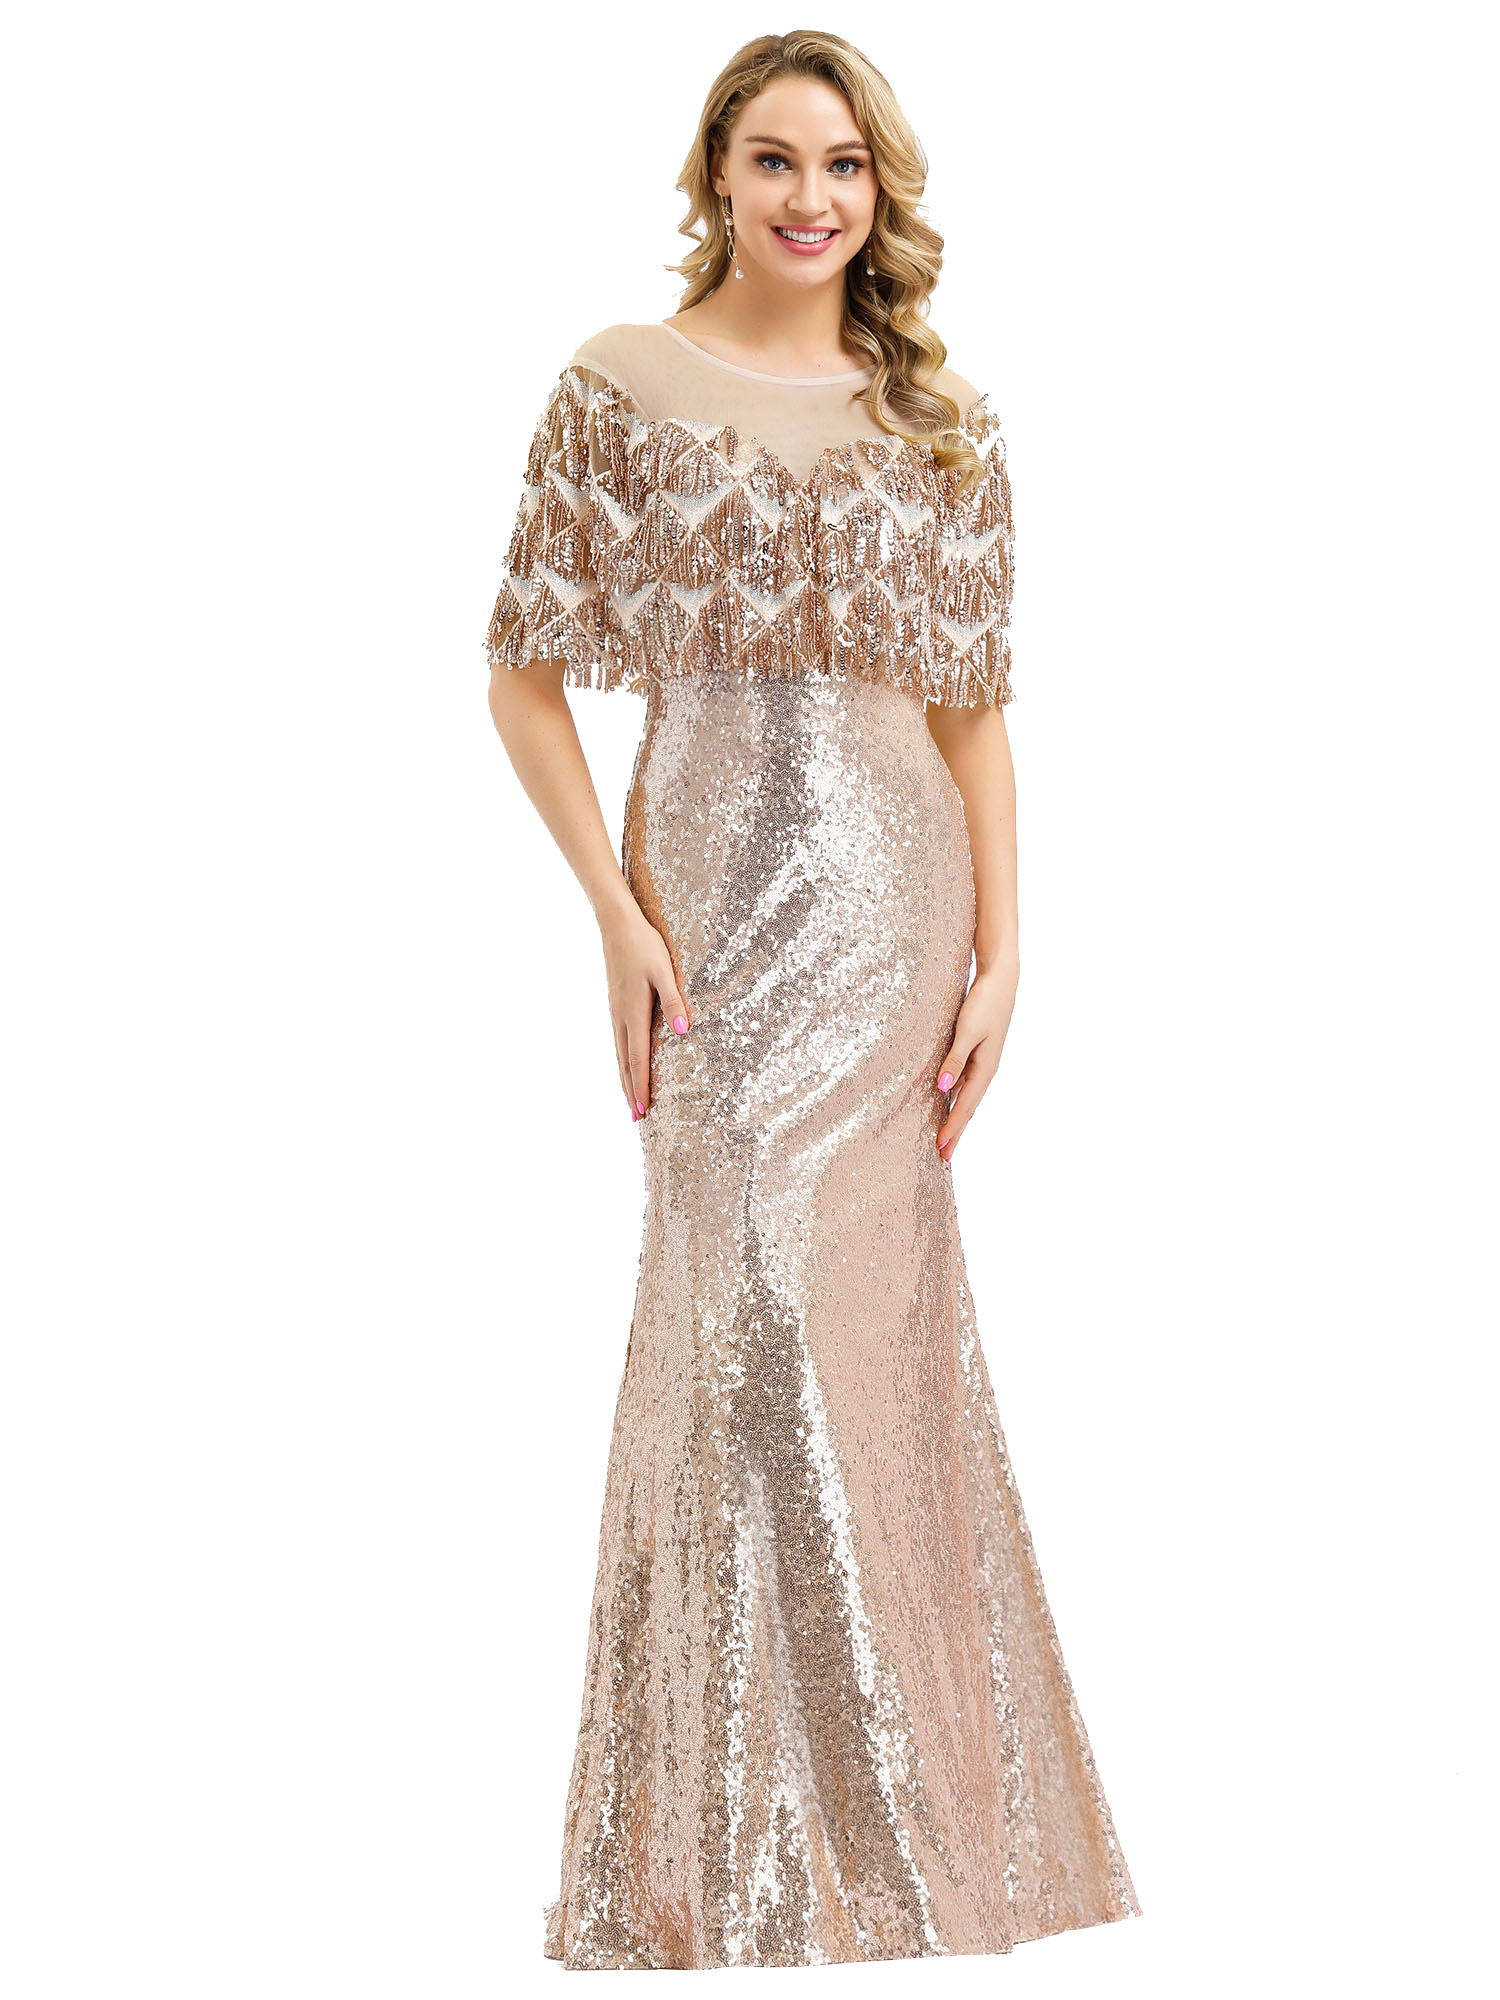 Ever-pretty-Formal-Celebrity-Party-Dresses-Mermaid-Evening-Cocktail-Prom-Gowns thumbnail 4